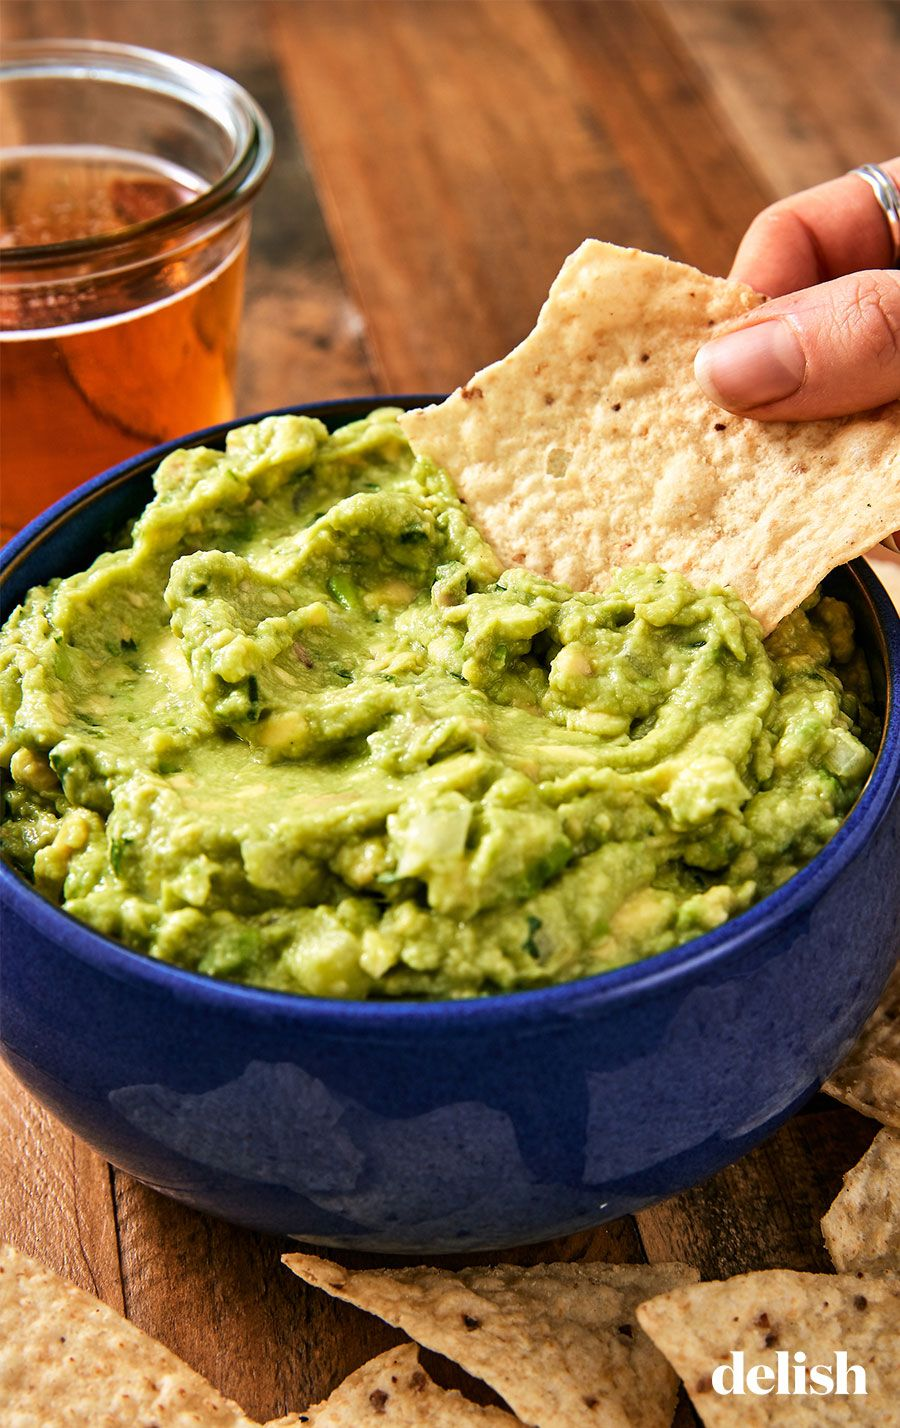 How to make good spicy guacamole